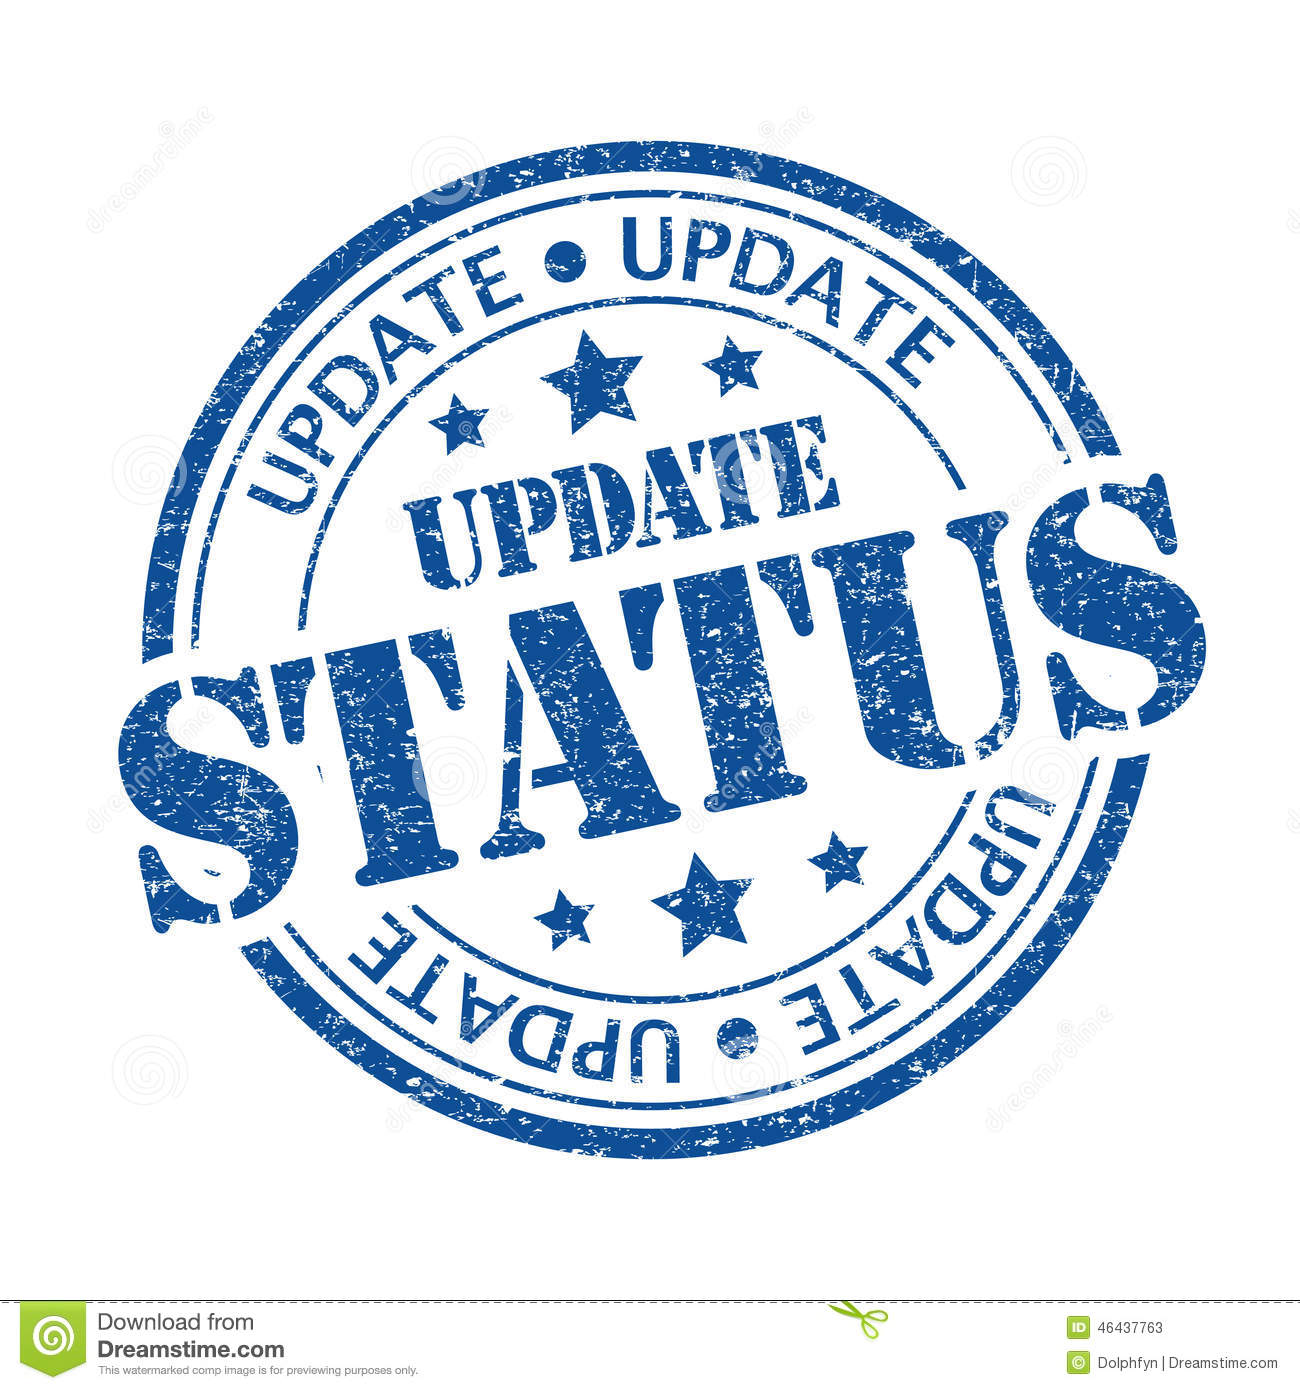 Update status Stock Photos: www.clipartpanda.com/categories/statue-clip-art